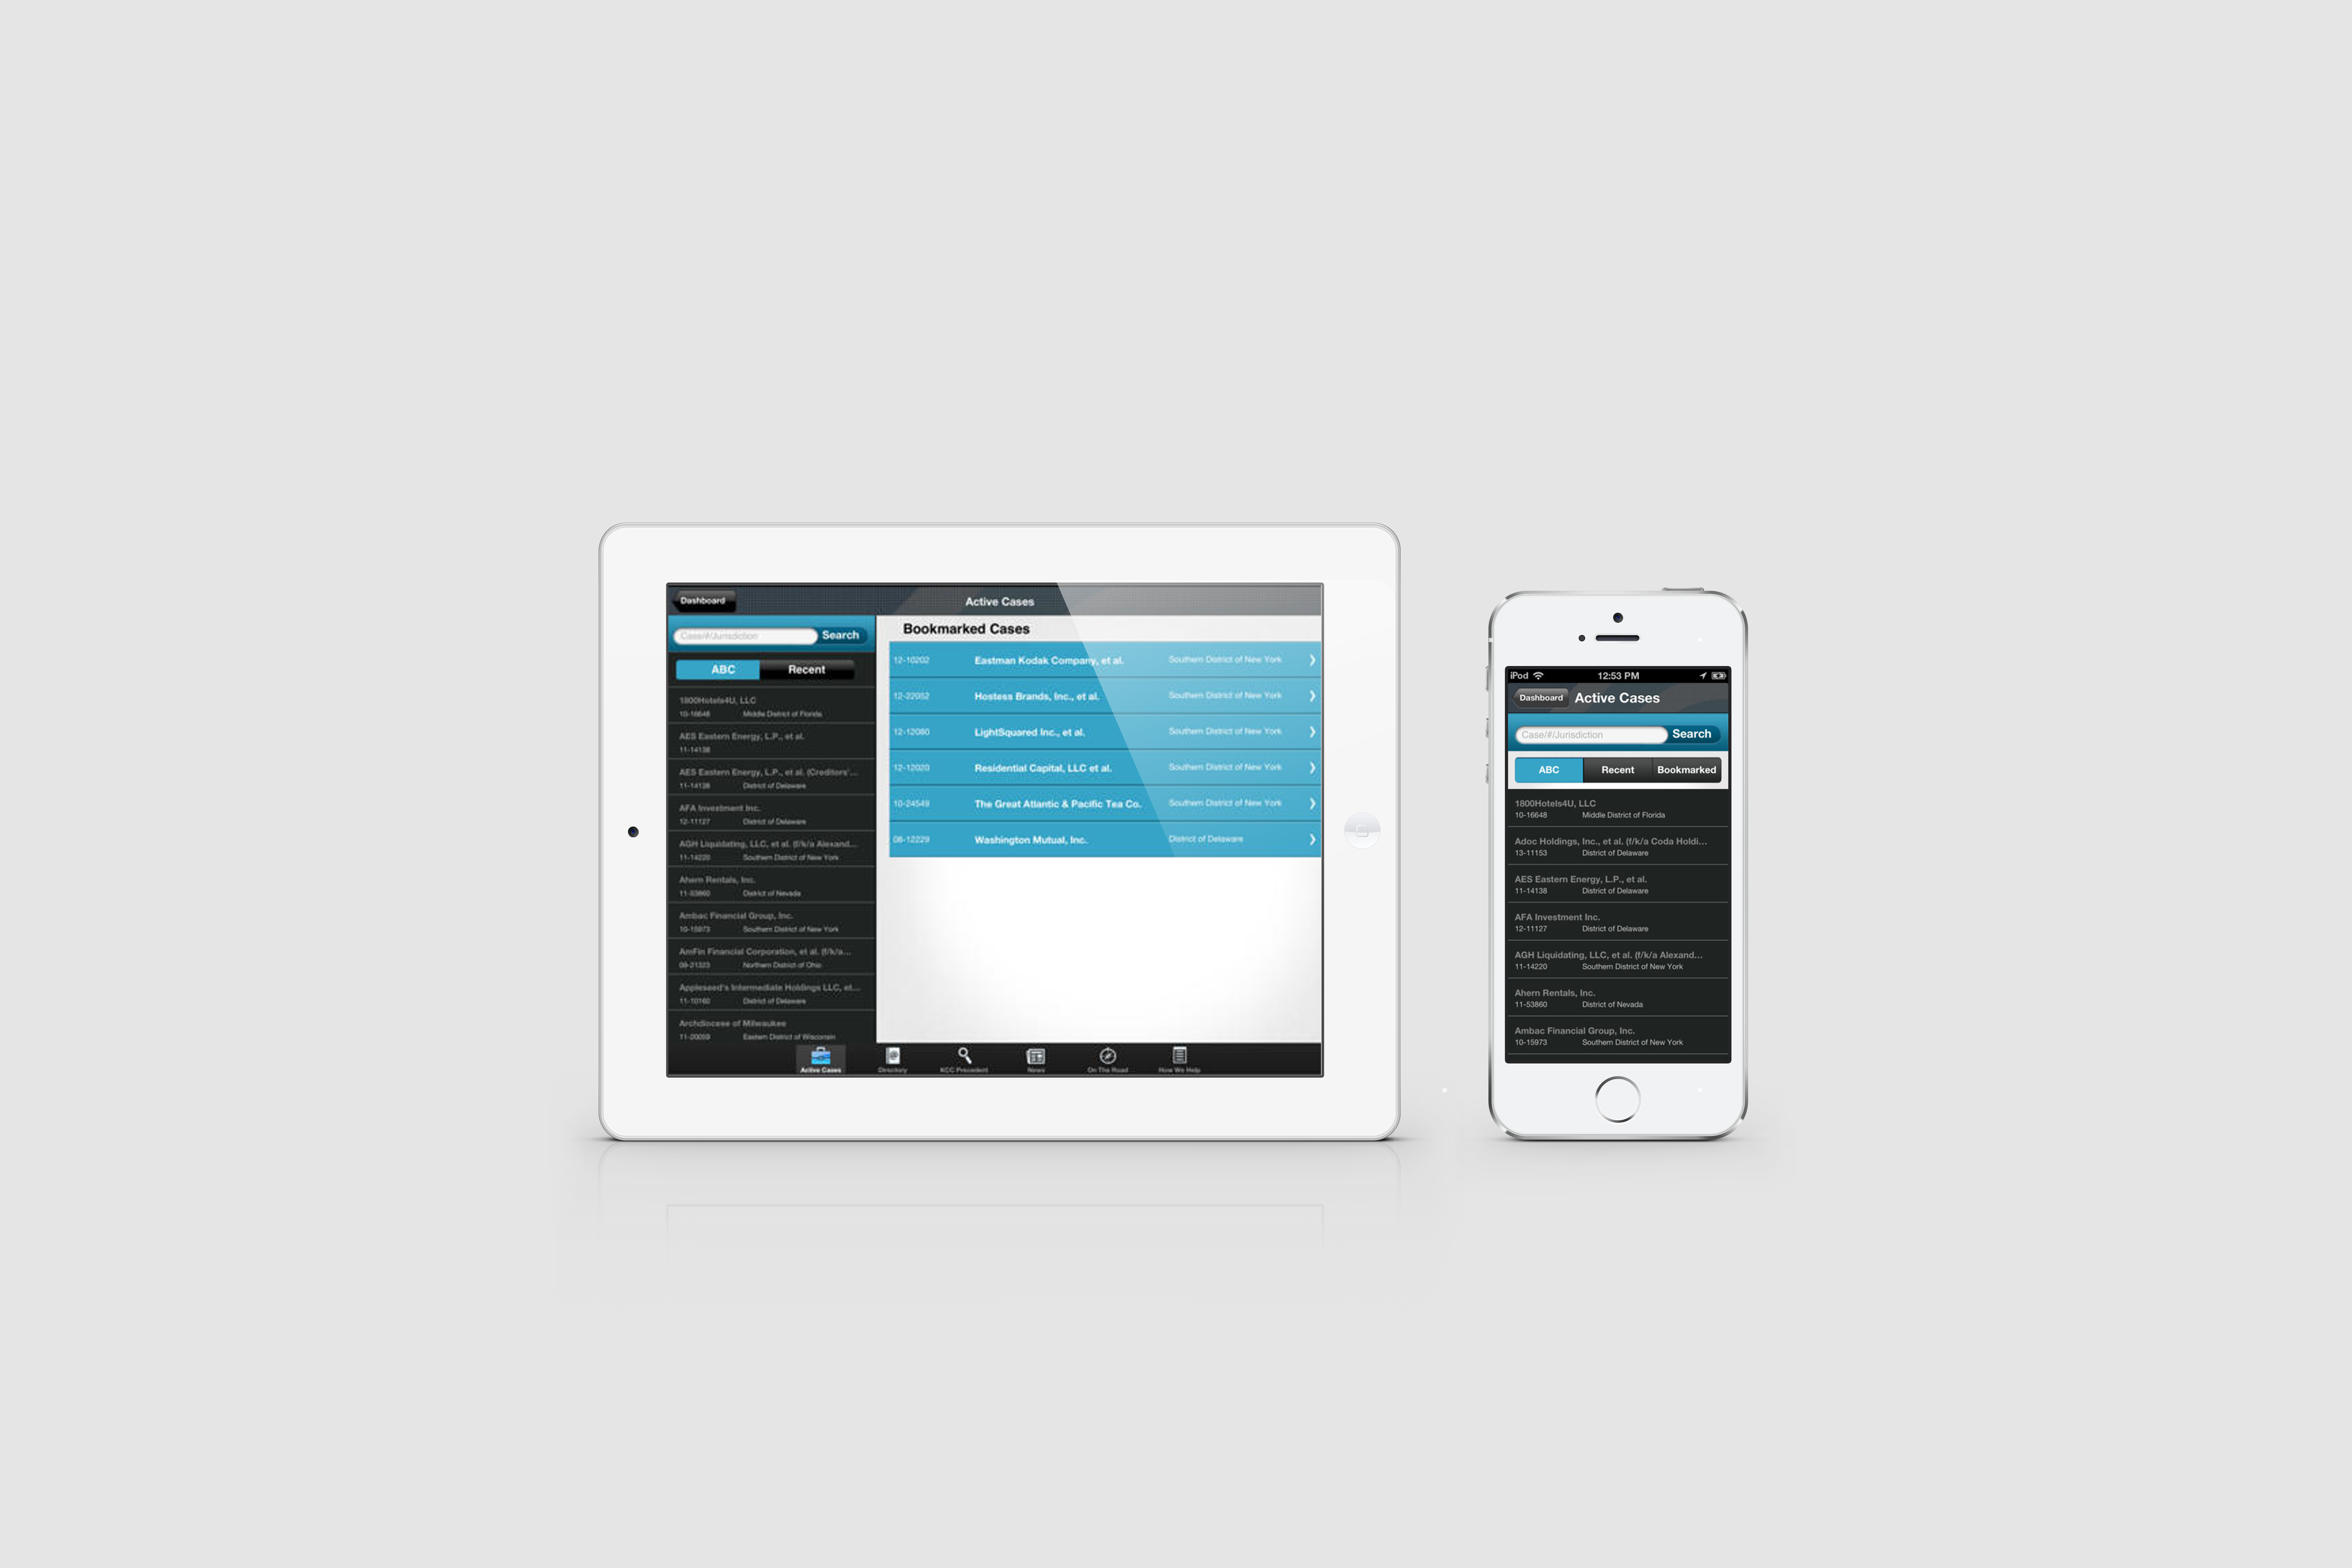 image of the KCC iOS app on an iPad and iPhone